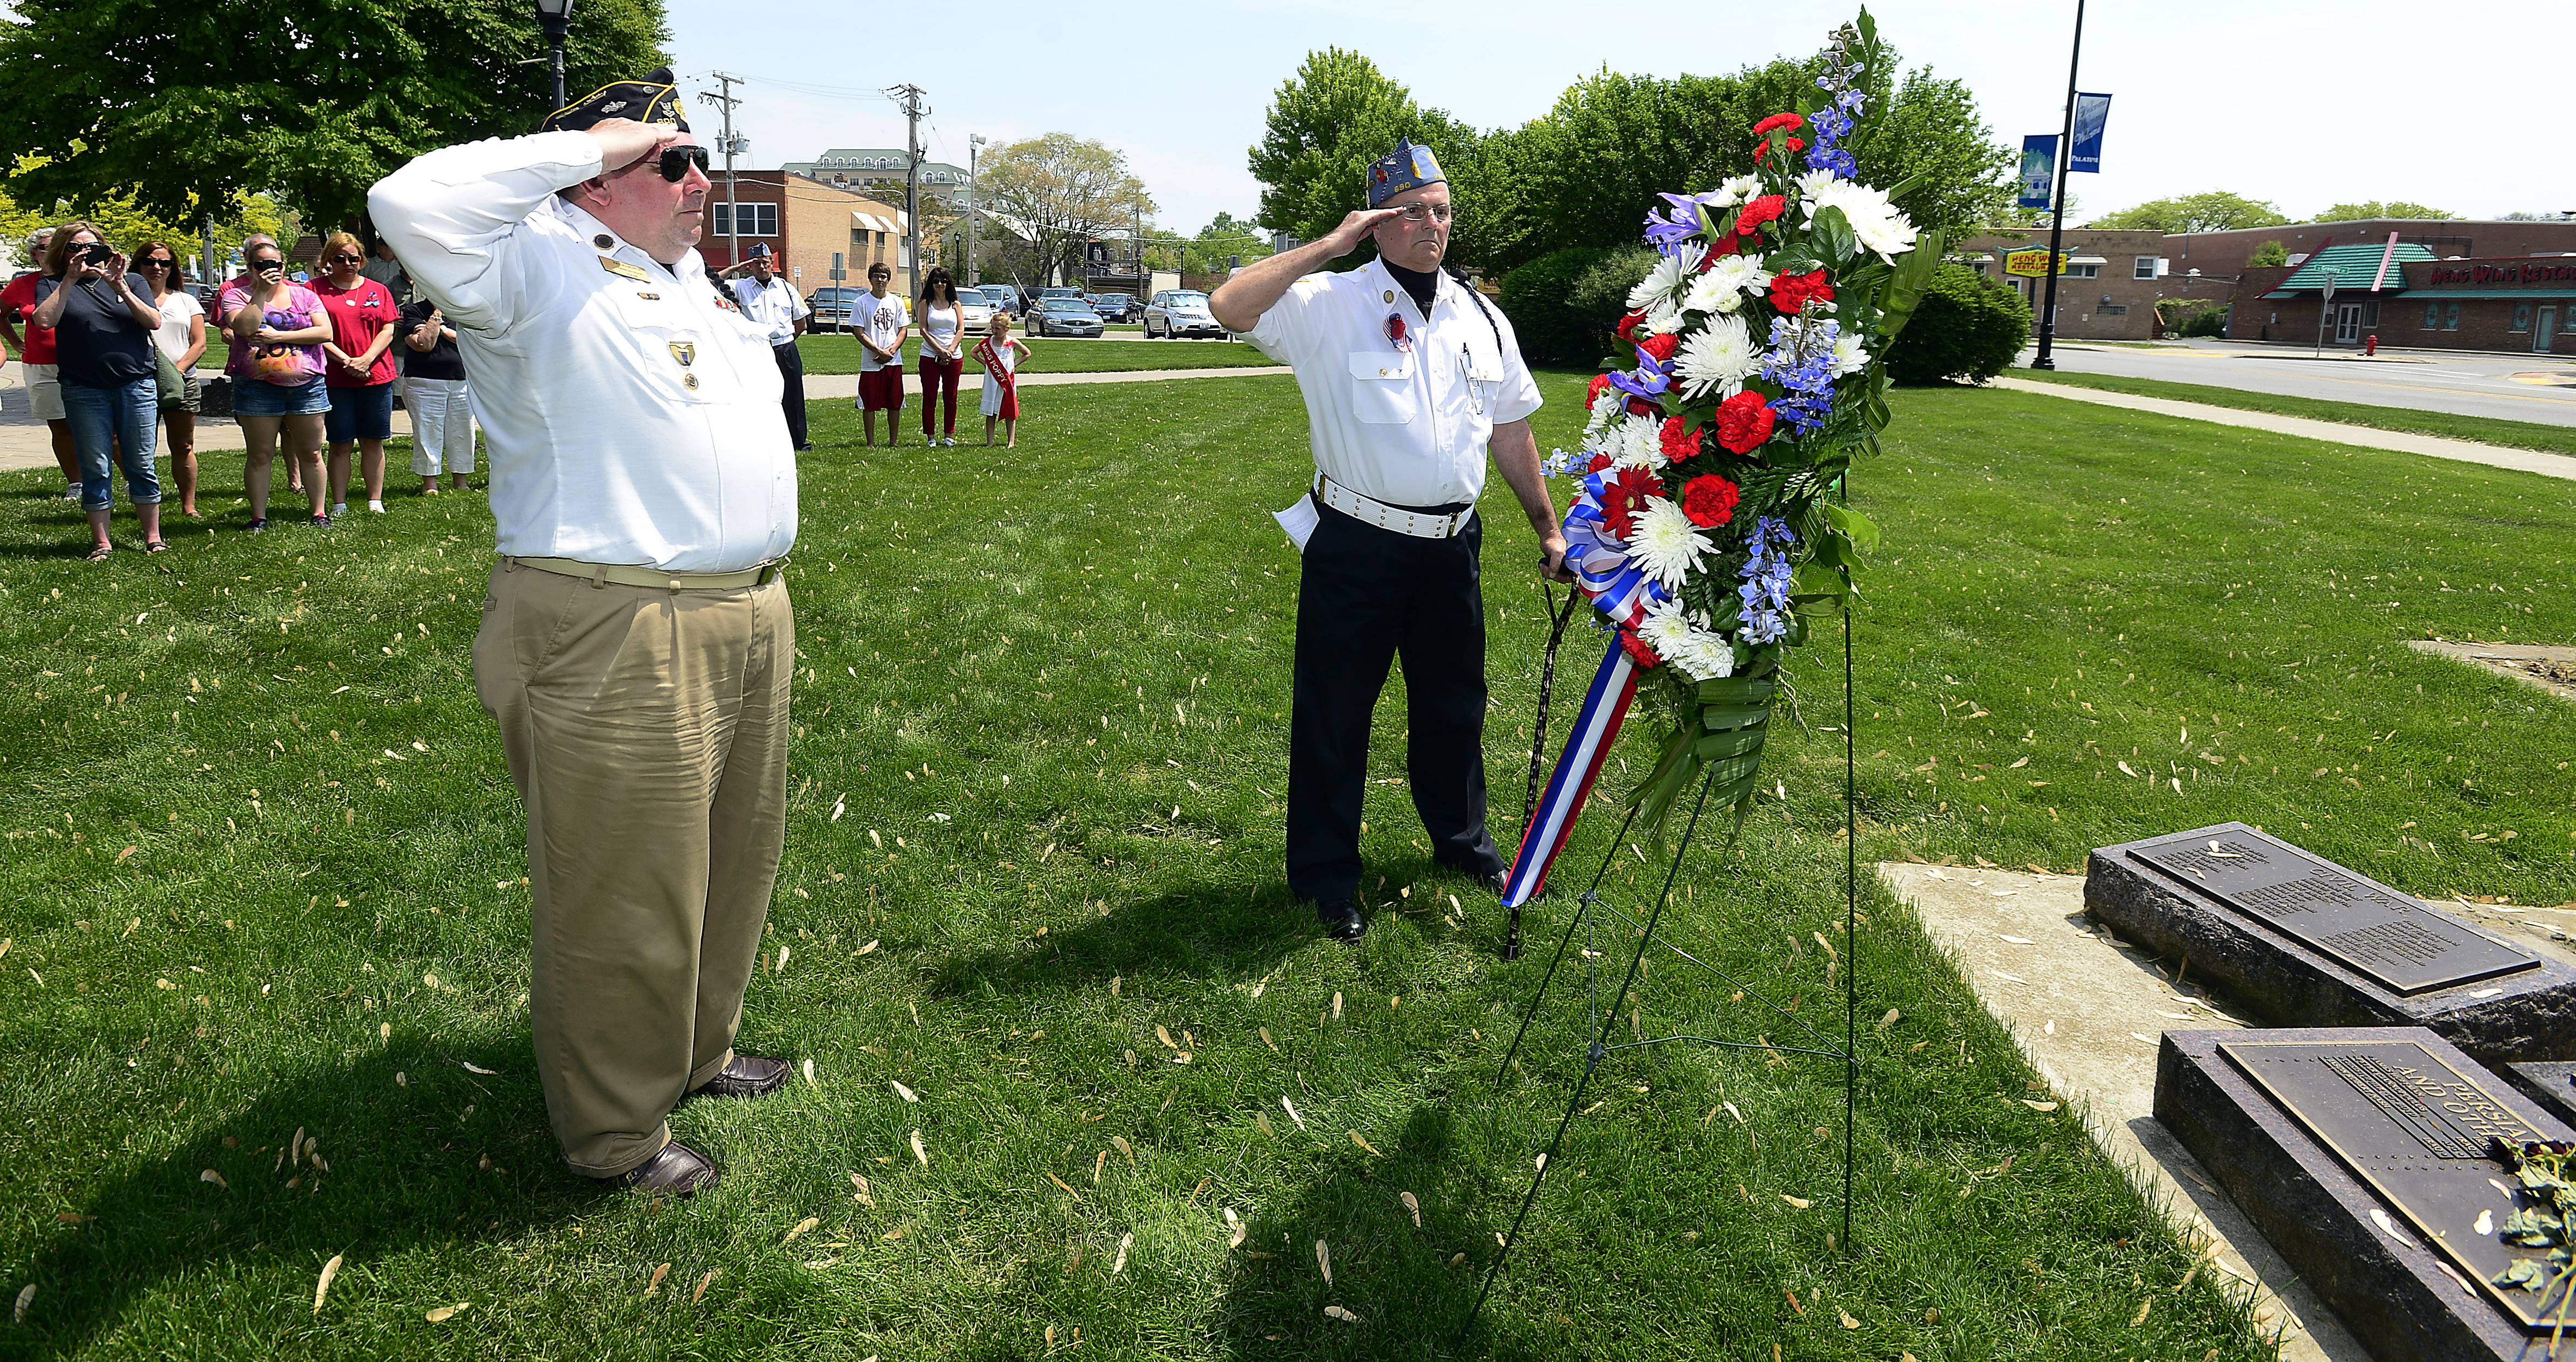 Commander Ed Grabowski (left) and Chaplain Tom Seick of Palatine's American Legion Post 690 salute after the laying of the wreath at the Memorial Day service at the Towne Square in Palatine on Monday.